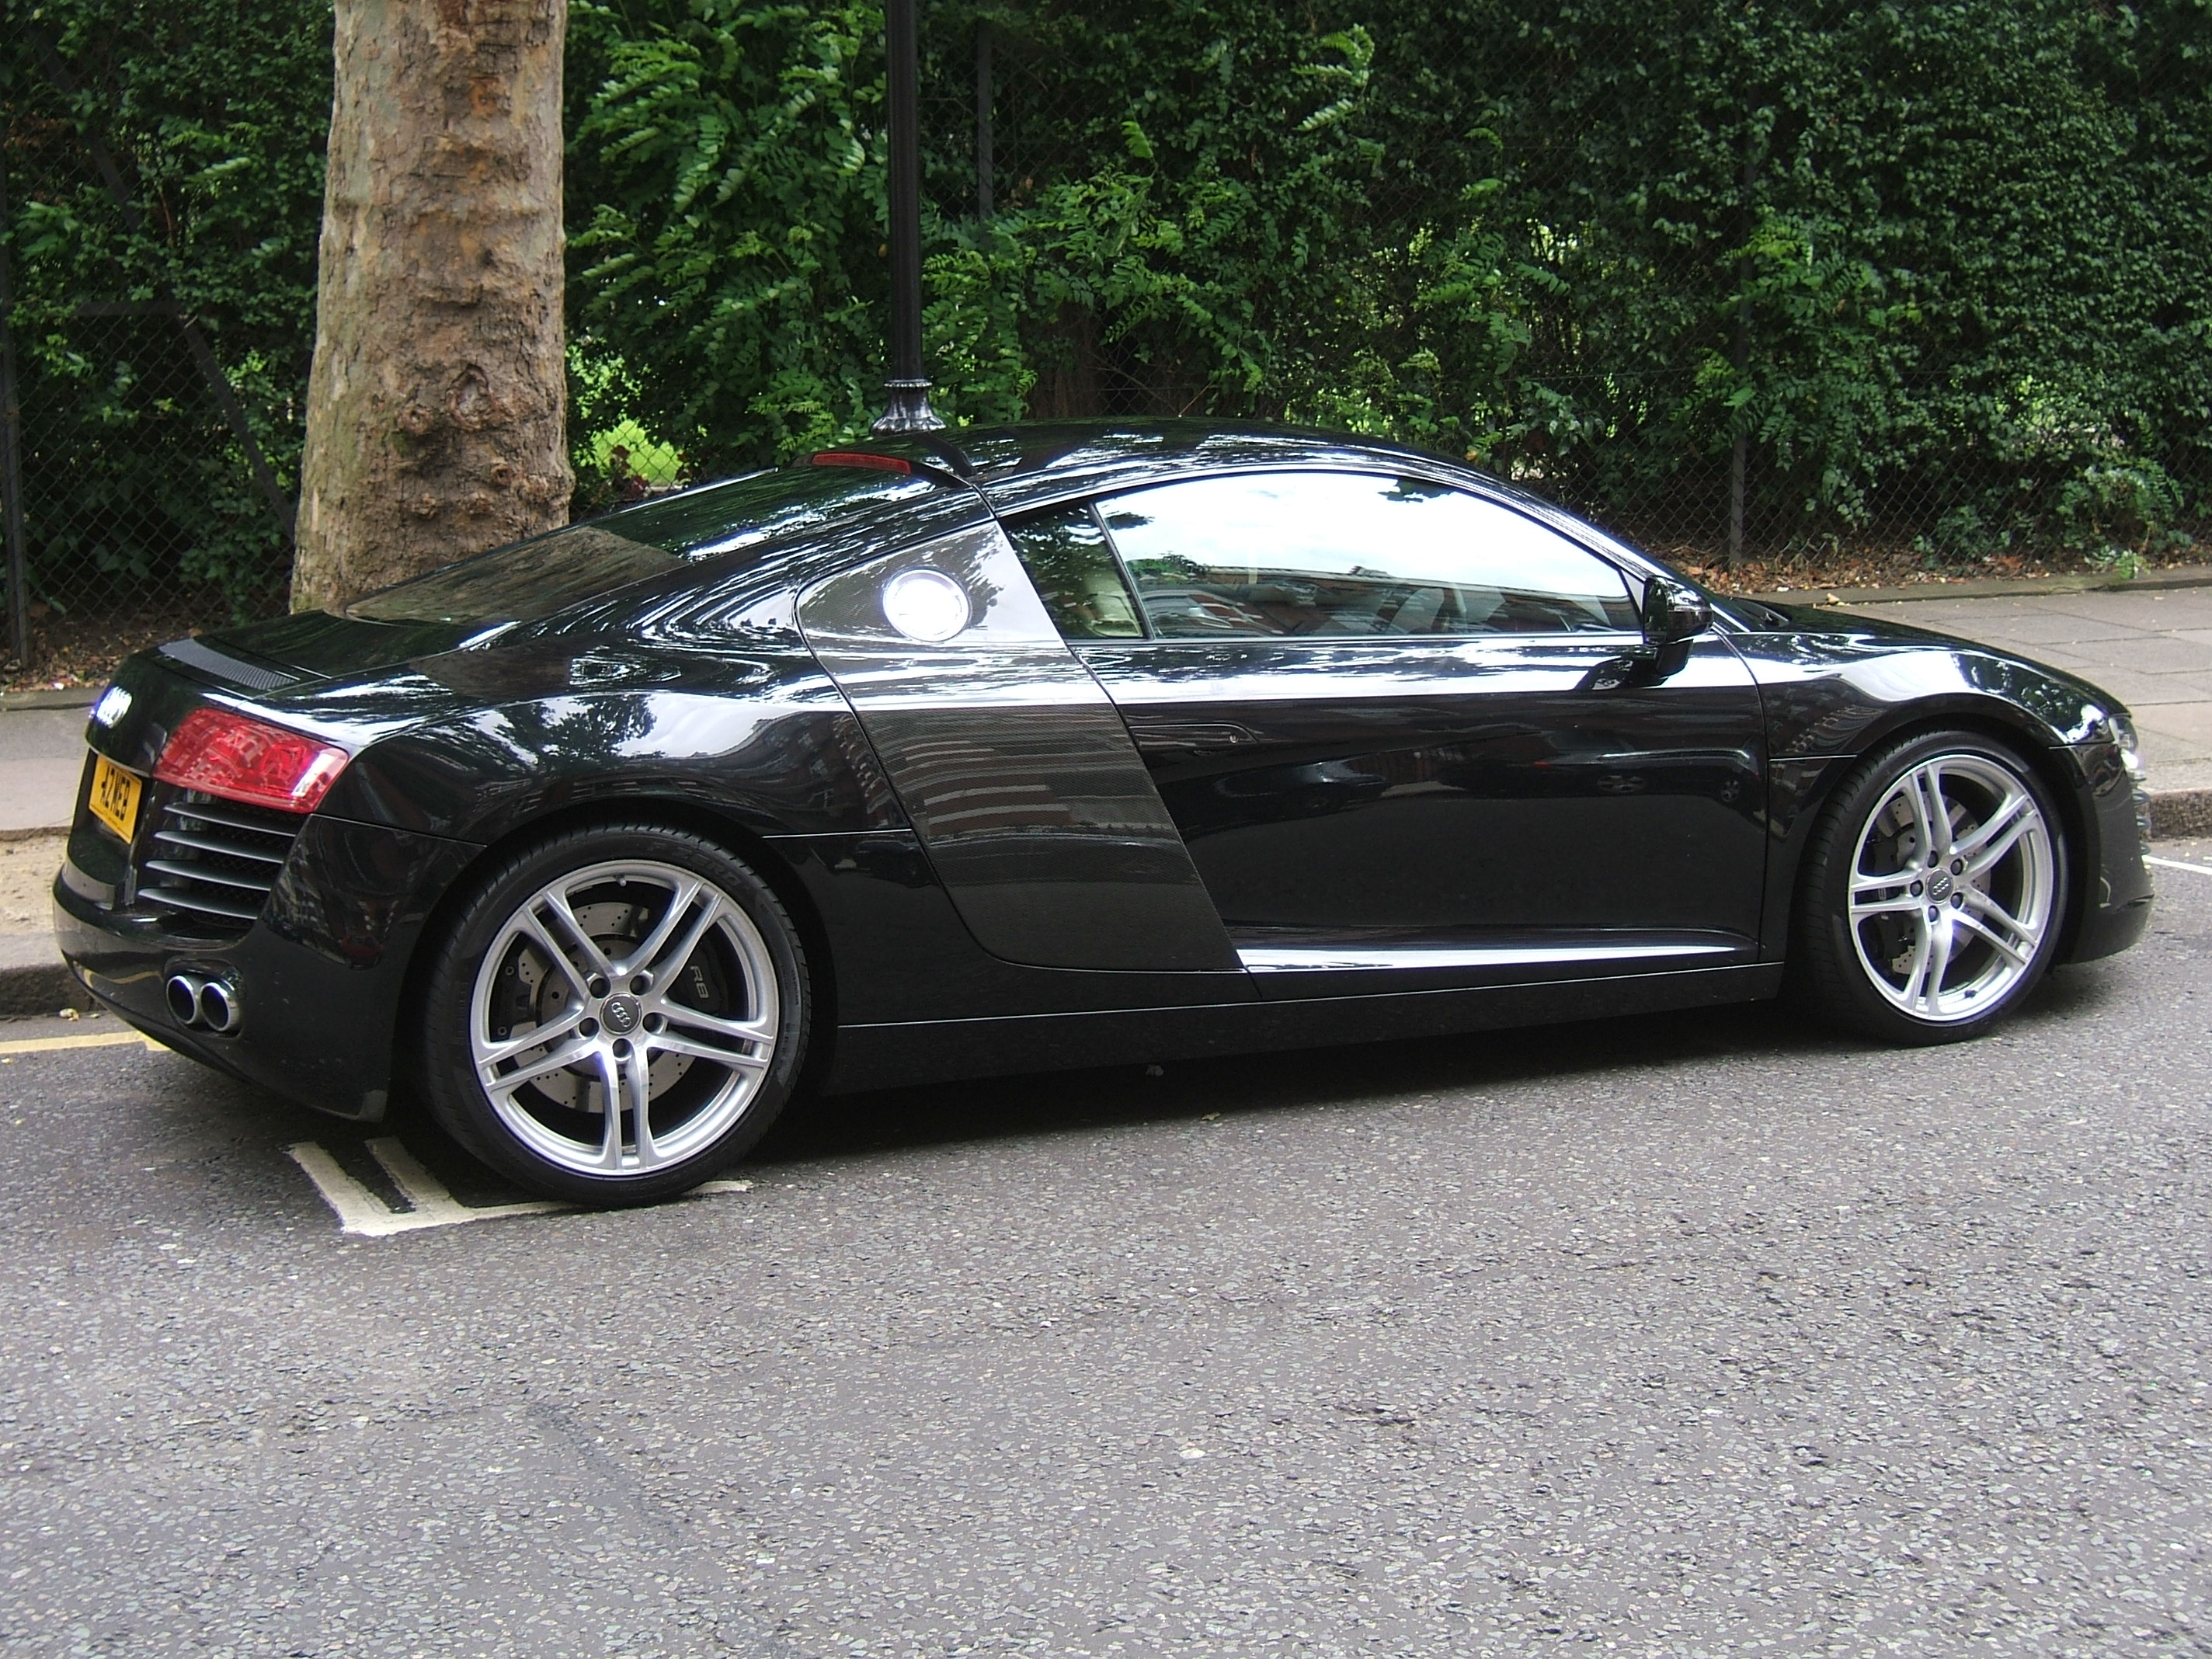 Black Audi R8 Background For Free Download